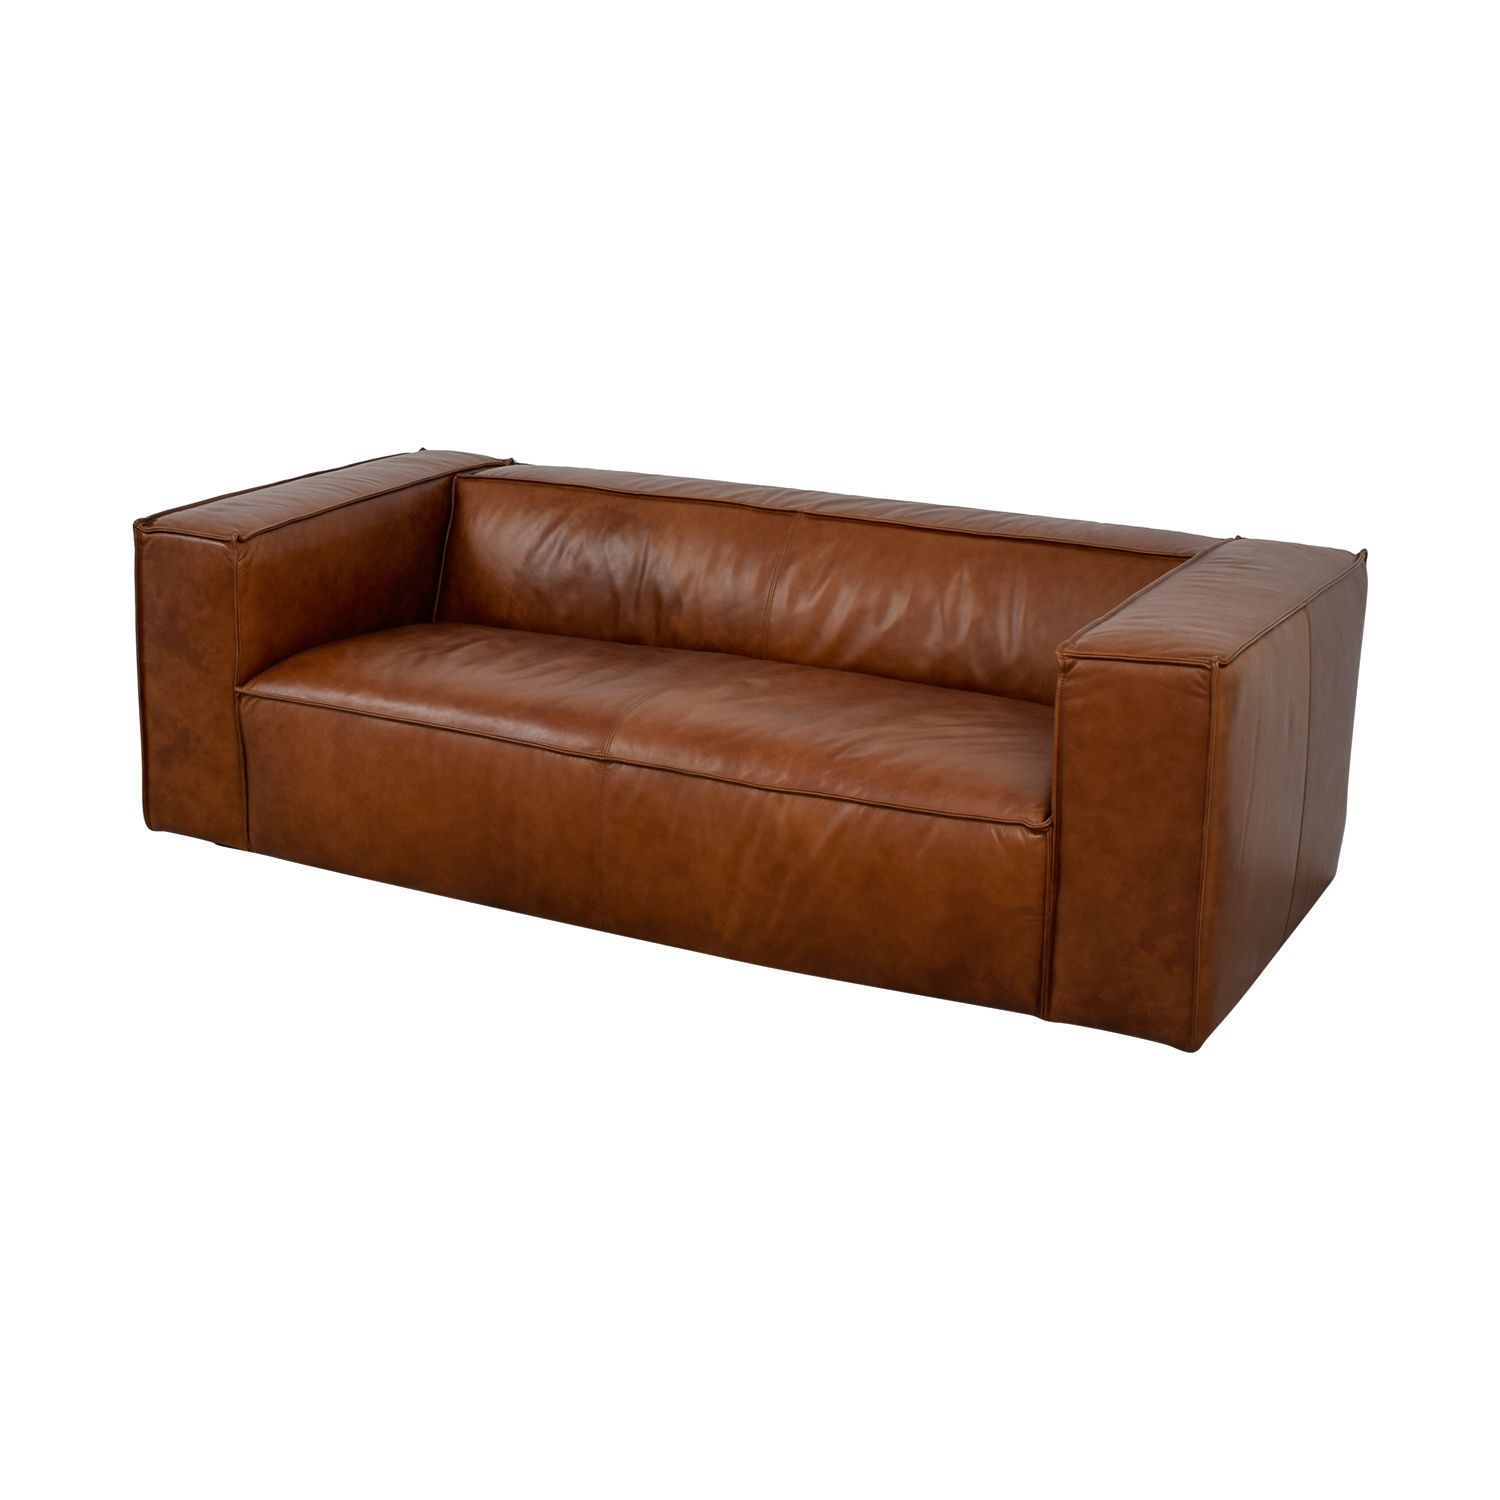 Leather Sofa Price: Cognac Leather High Arm Sofa / Sofas